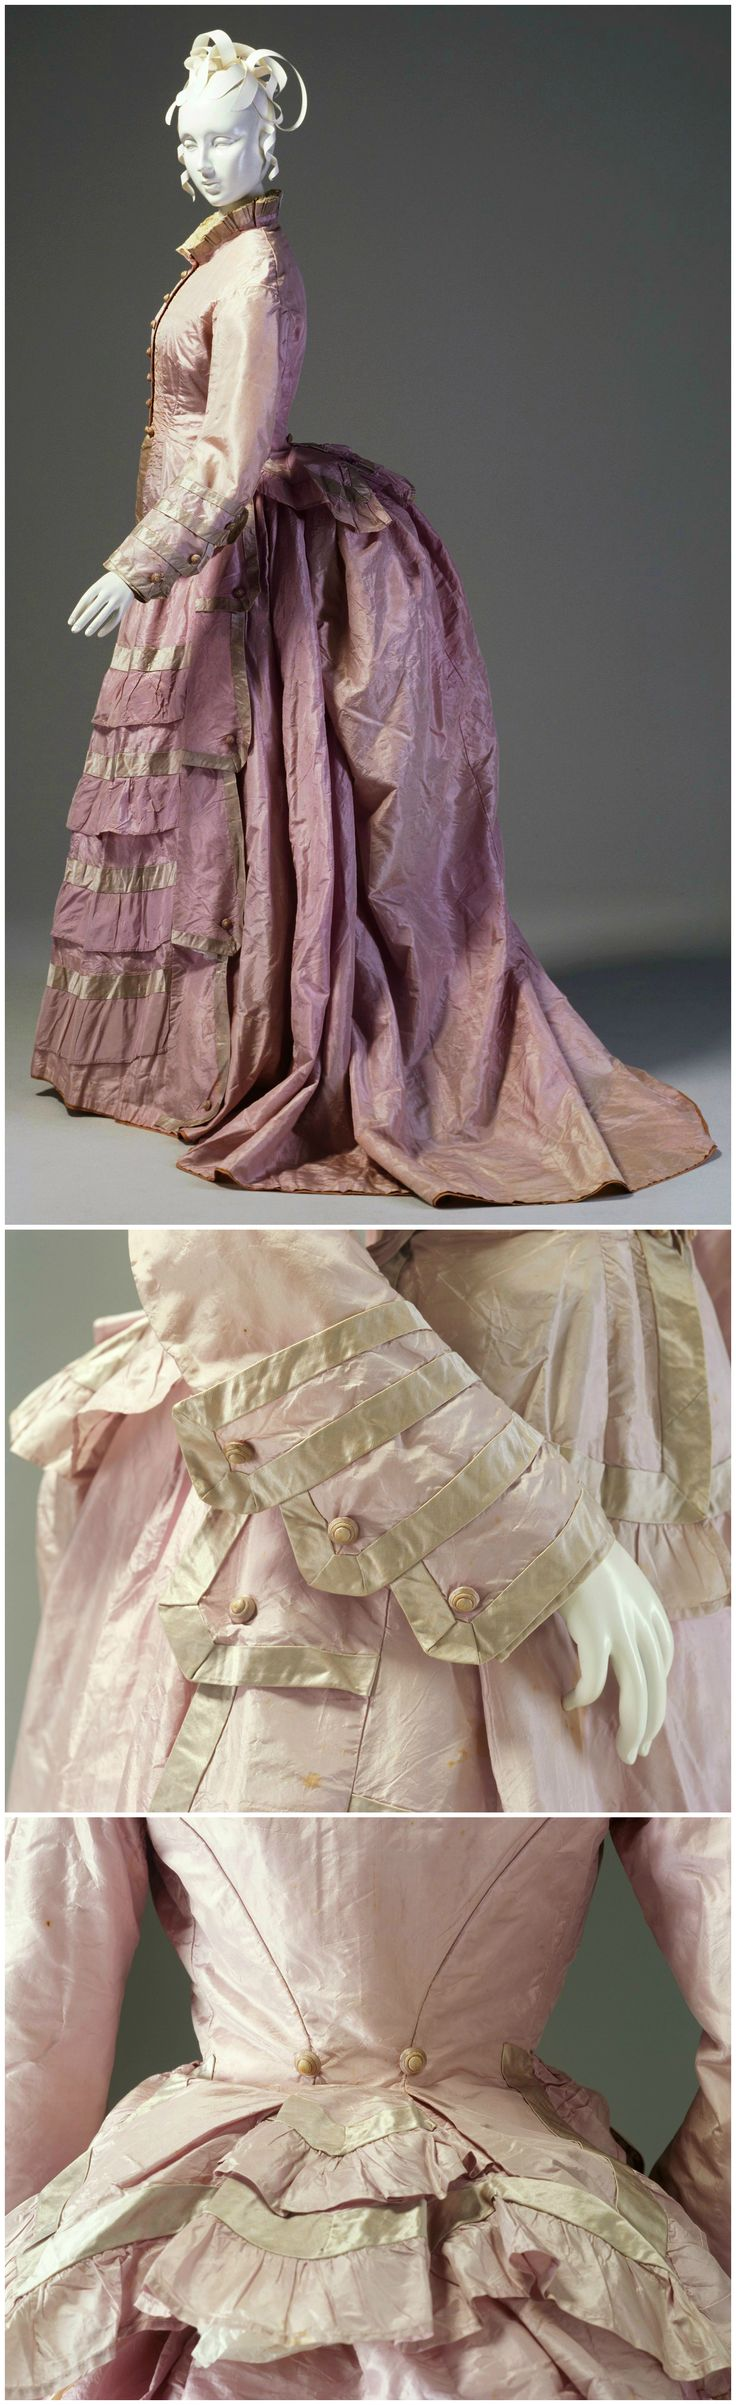 "Mauve silk taffeta afternoon dress consisting of bodice and bustle skirt, both trimmed with lengths of lavender coloured satin, Australia, c. 1876. Emily McMurrick (née Waterman) wore this dress at, or just after, her marriage to Duncan McMurrick in 1876. It is believed to be her ""going-away"" dress. Going away dresses were traditionally worn by a newly married woman when leaving on her honeymoon. Collection of the Museum of Applied Arts & Sciences / Powerhouse Museum."